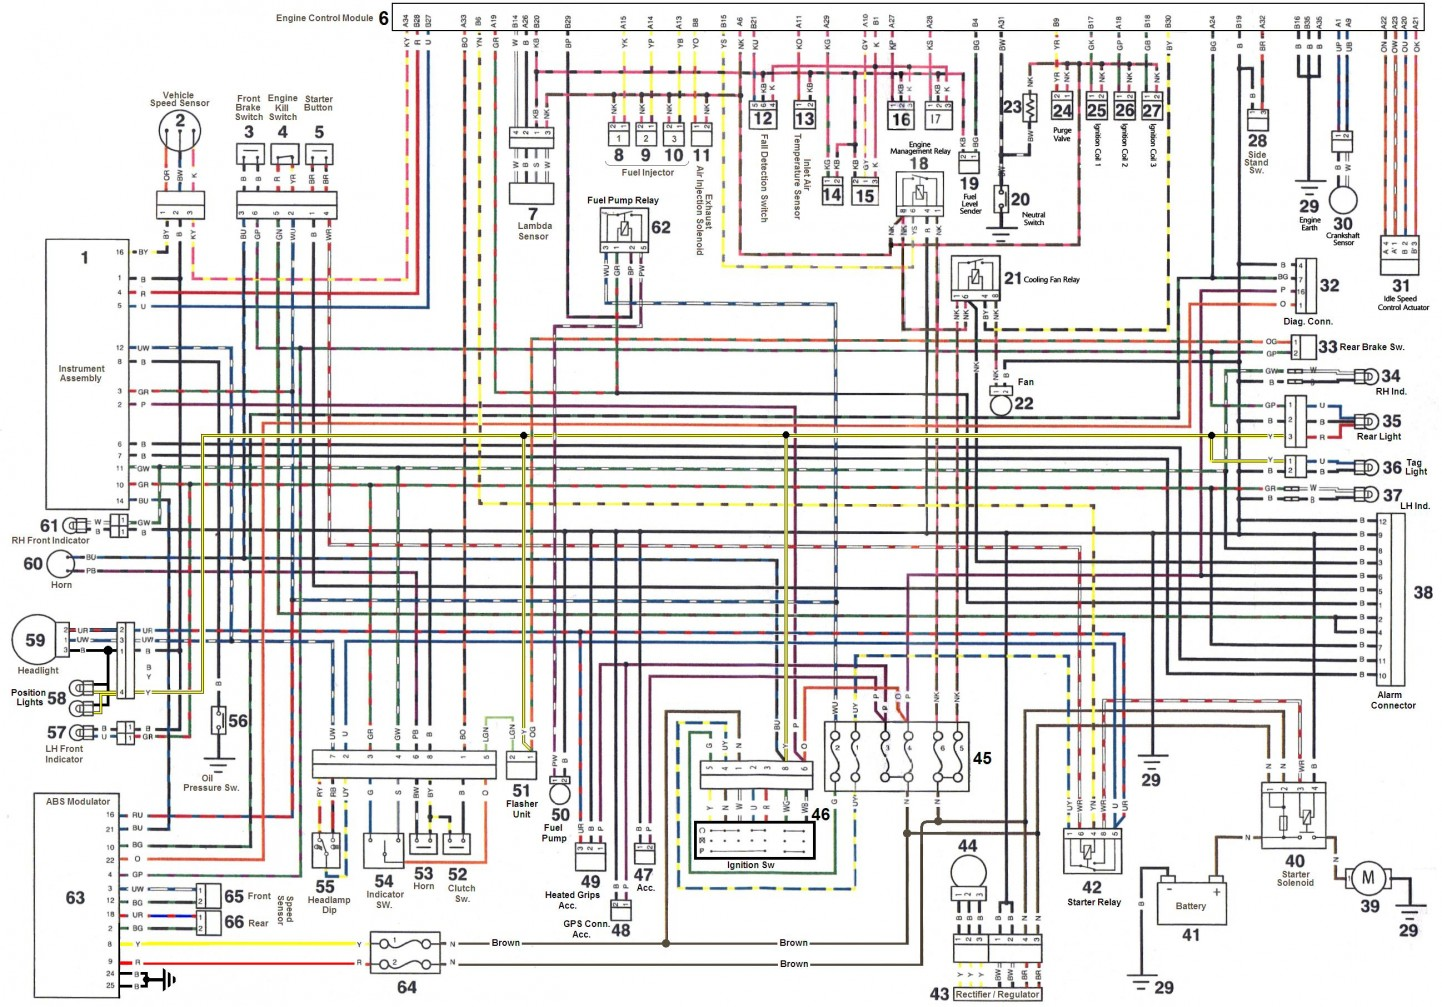 triumph tiger 1050 wiring diagram triumph adventurer 900